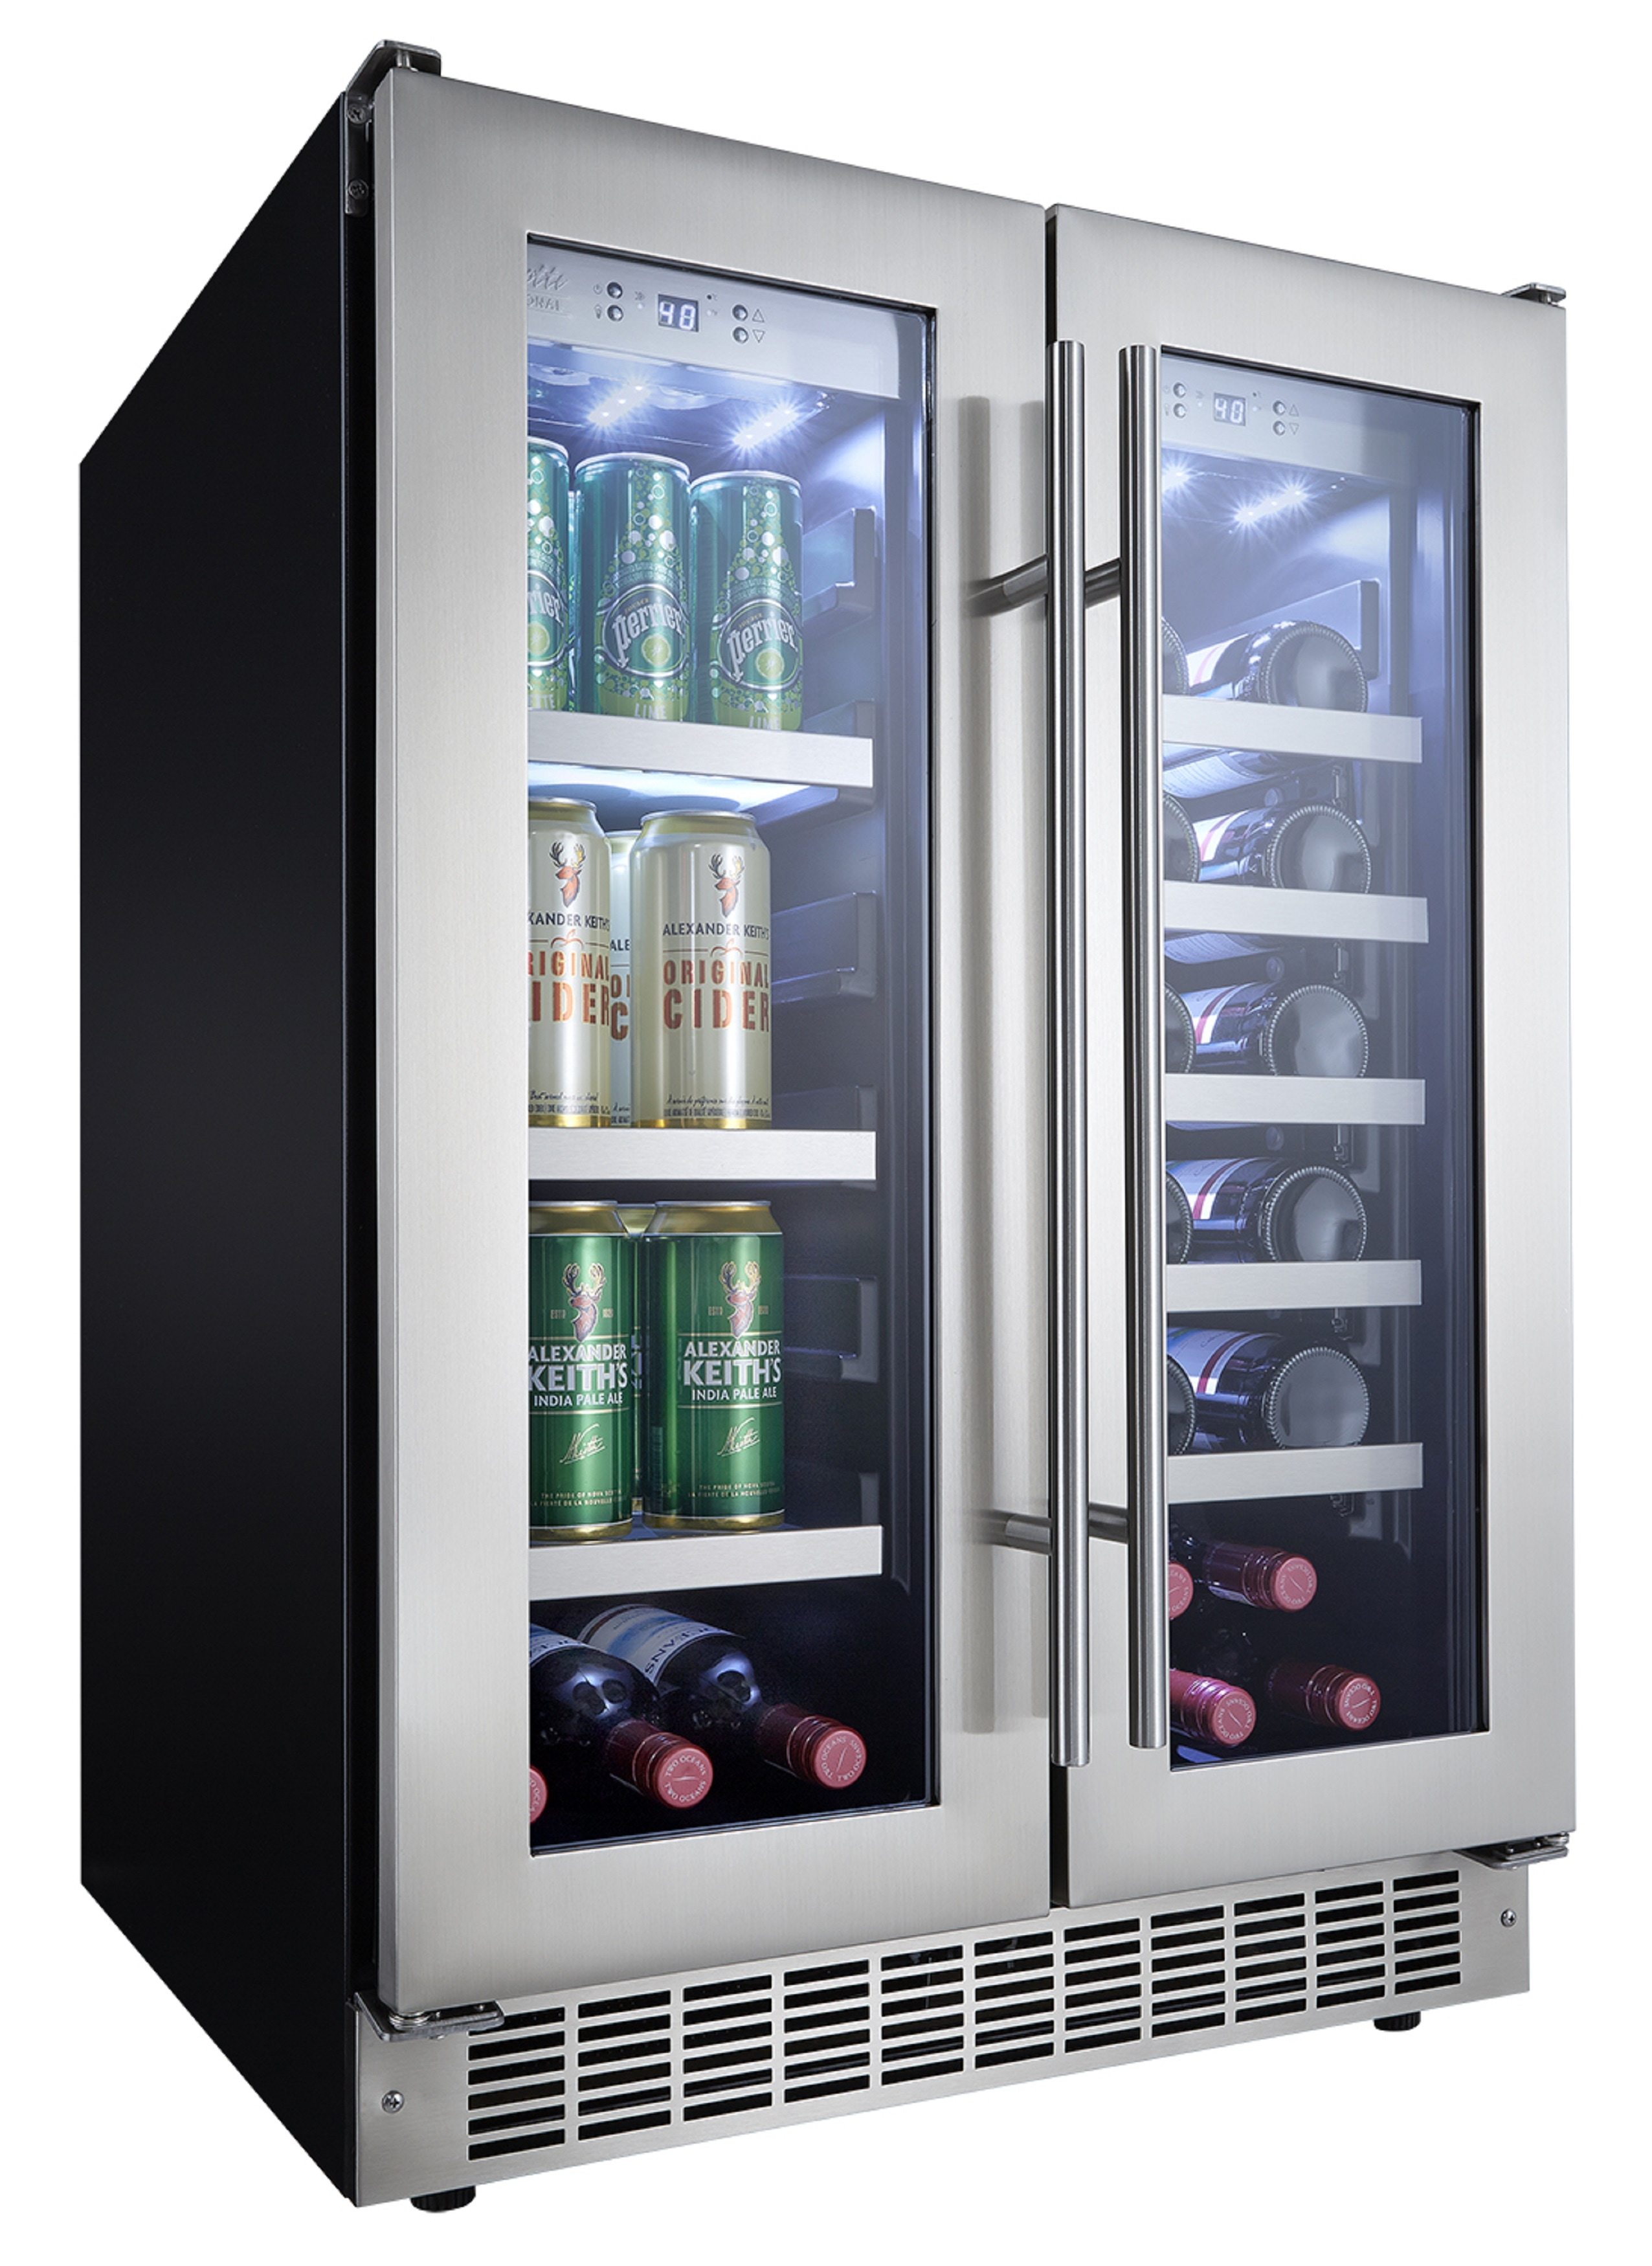 Danby Silhouette Professional Series- 24 Inch Stainless Steel Integrated Beverage Center